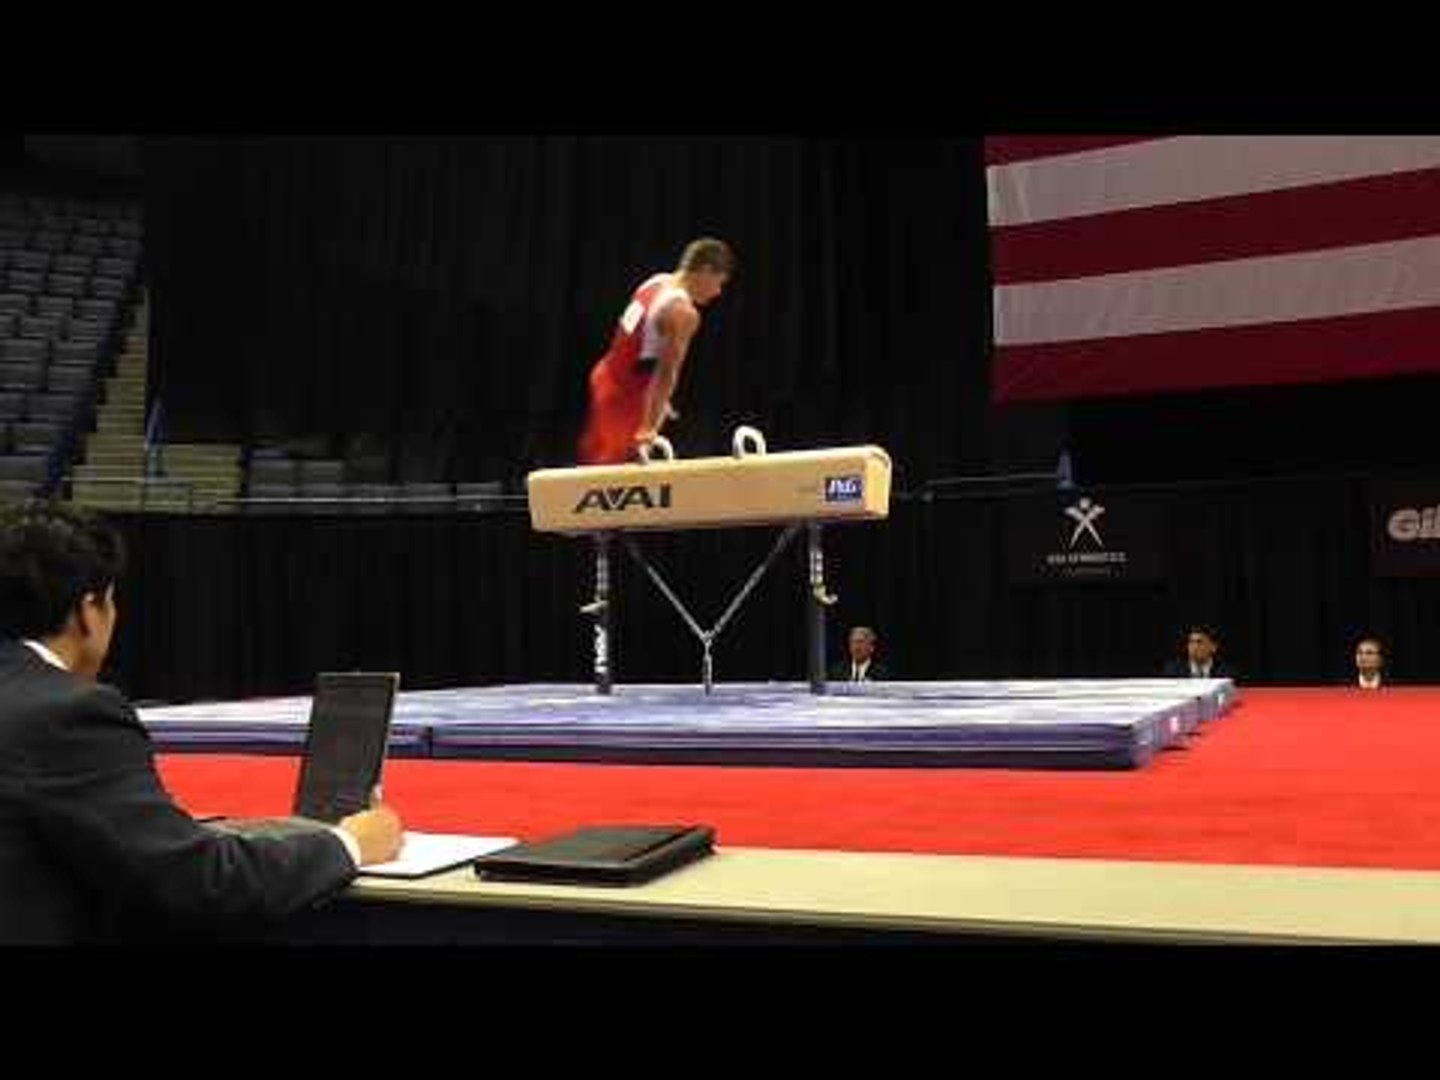 Hunter Justus - Pommel Horse - 2013 P&G Championships - Jr. Men - Day 2